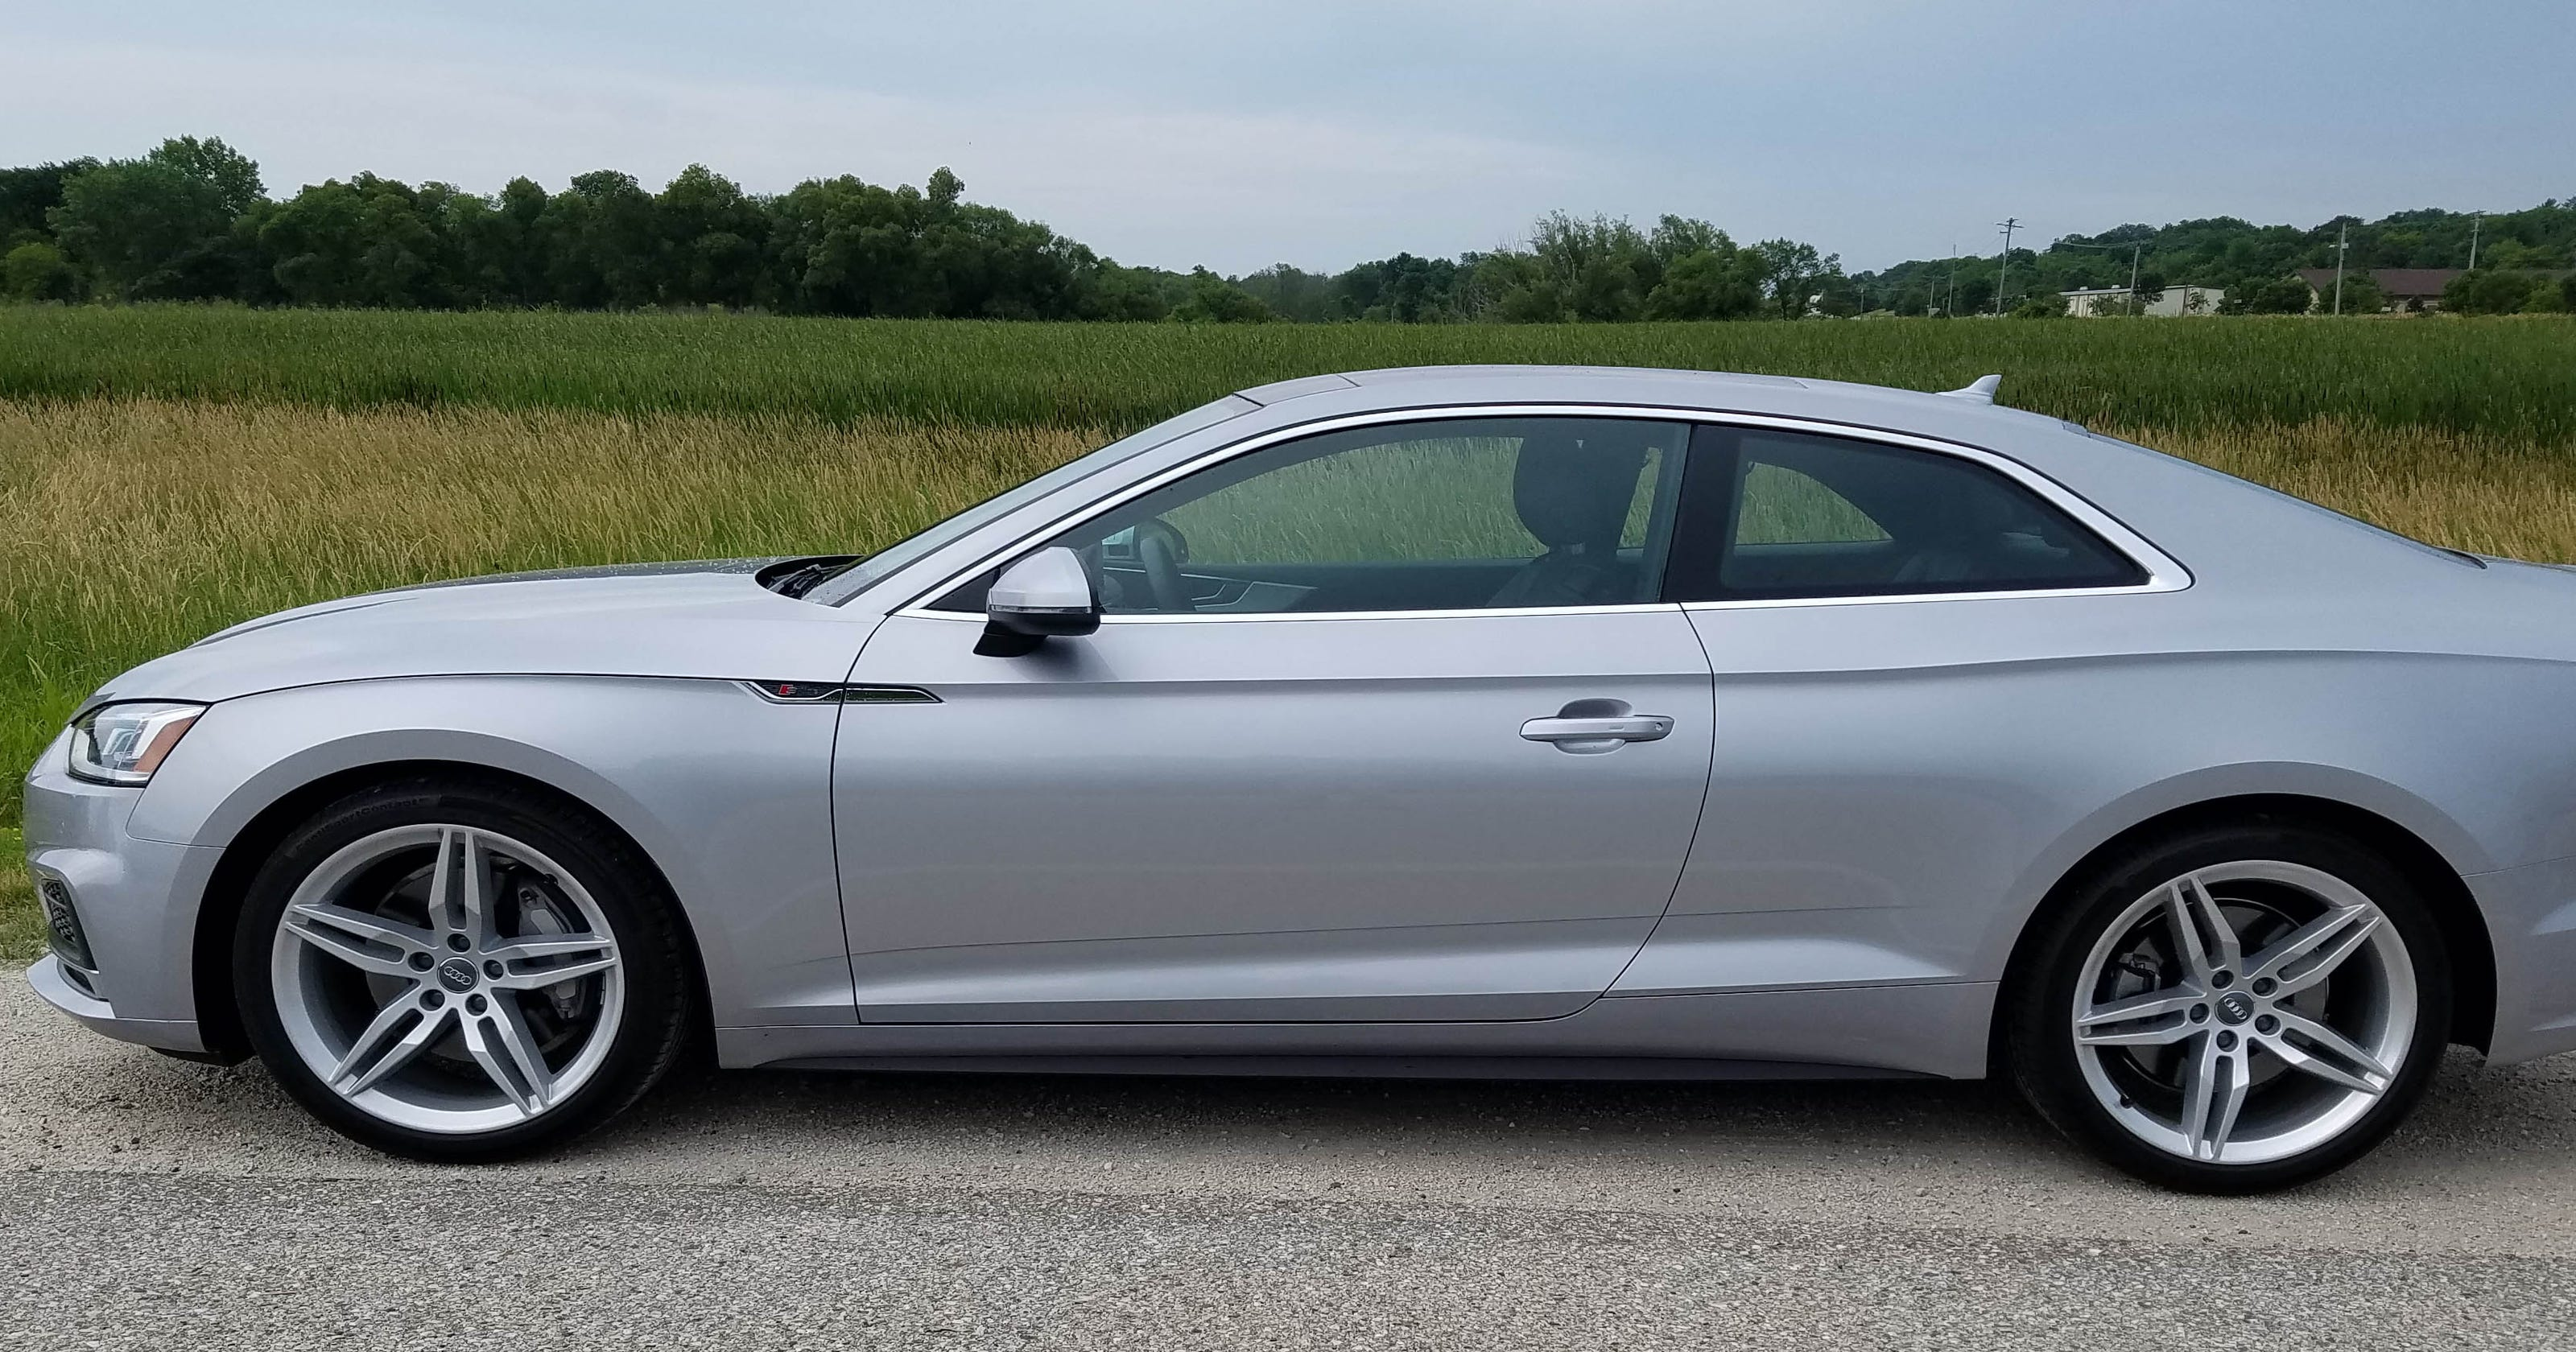 Savage On Wheels 2018 Audi A5 Coupe 20t Quattro